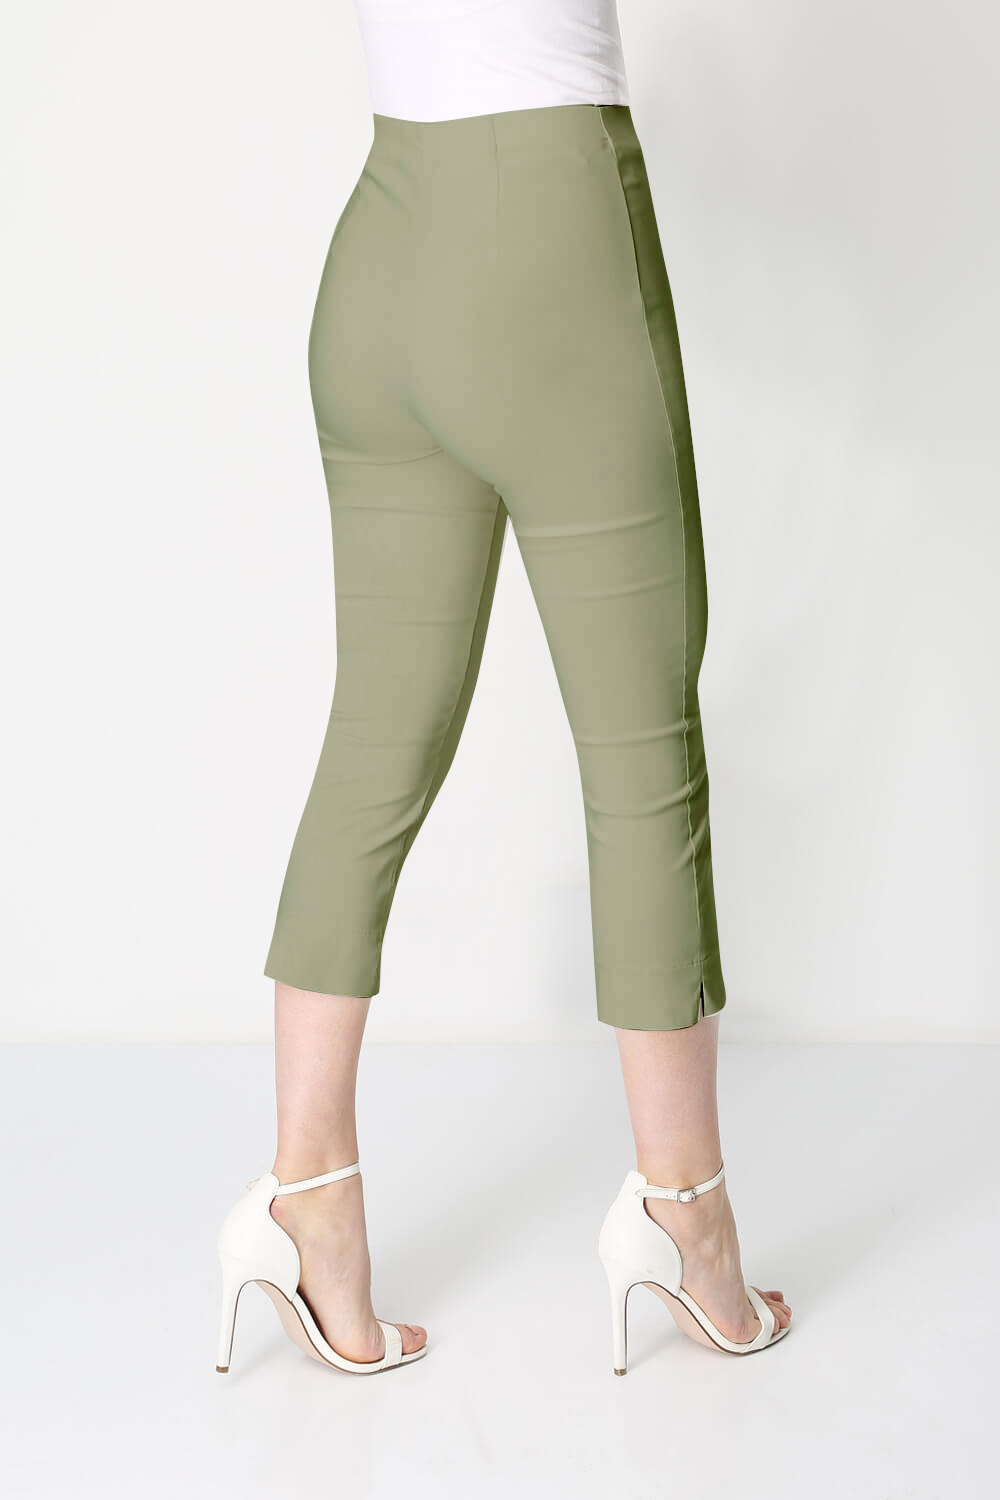 Roman-Originals-Women-Cropped-Stretch-Bengaline-Capri-Trousers-3-4-Thick-Legging 縮圖 115